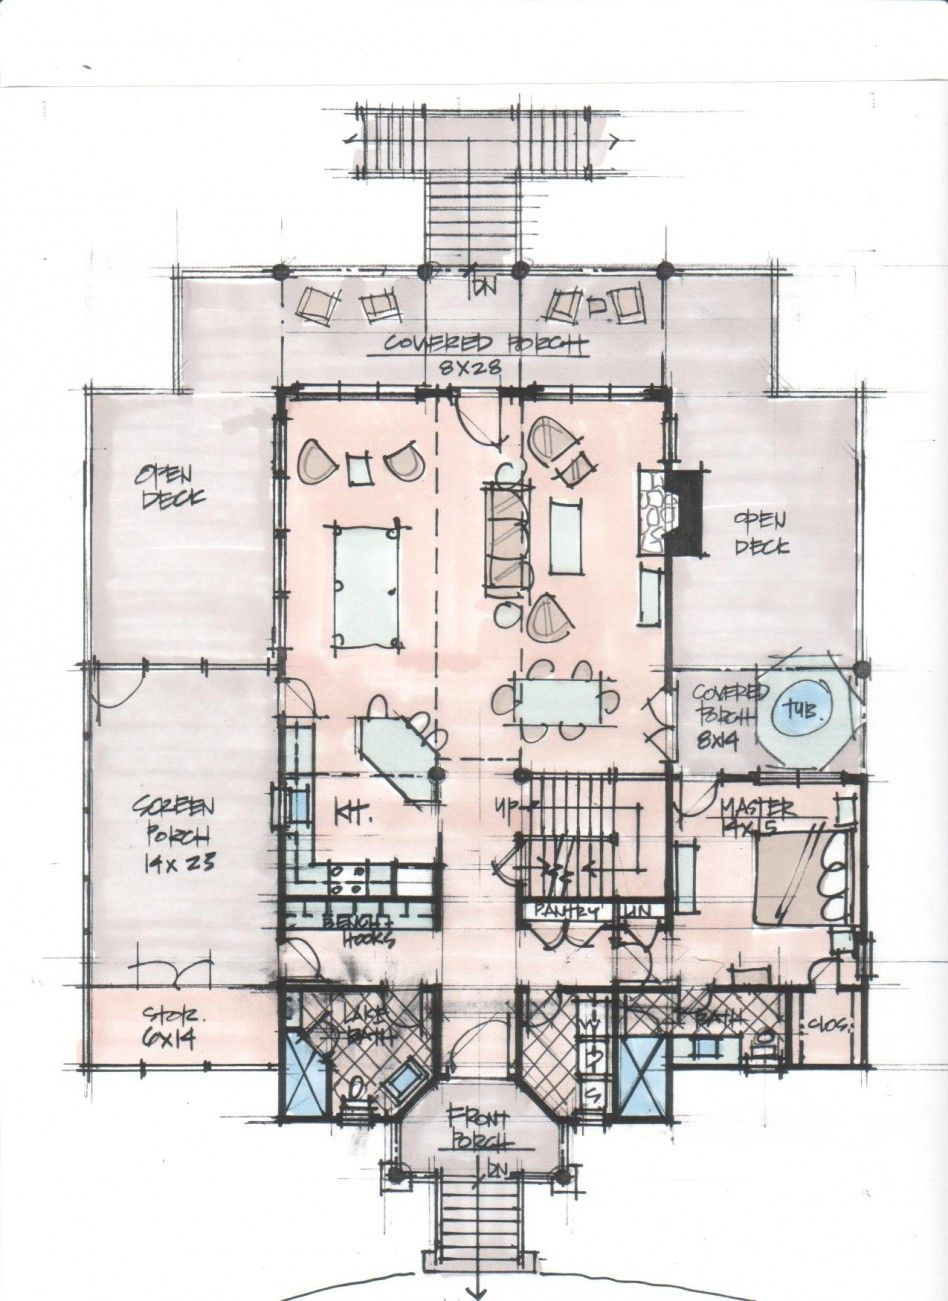 Architecture marvelous floor plan design ideas and for Floor plan sketch